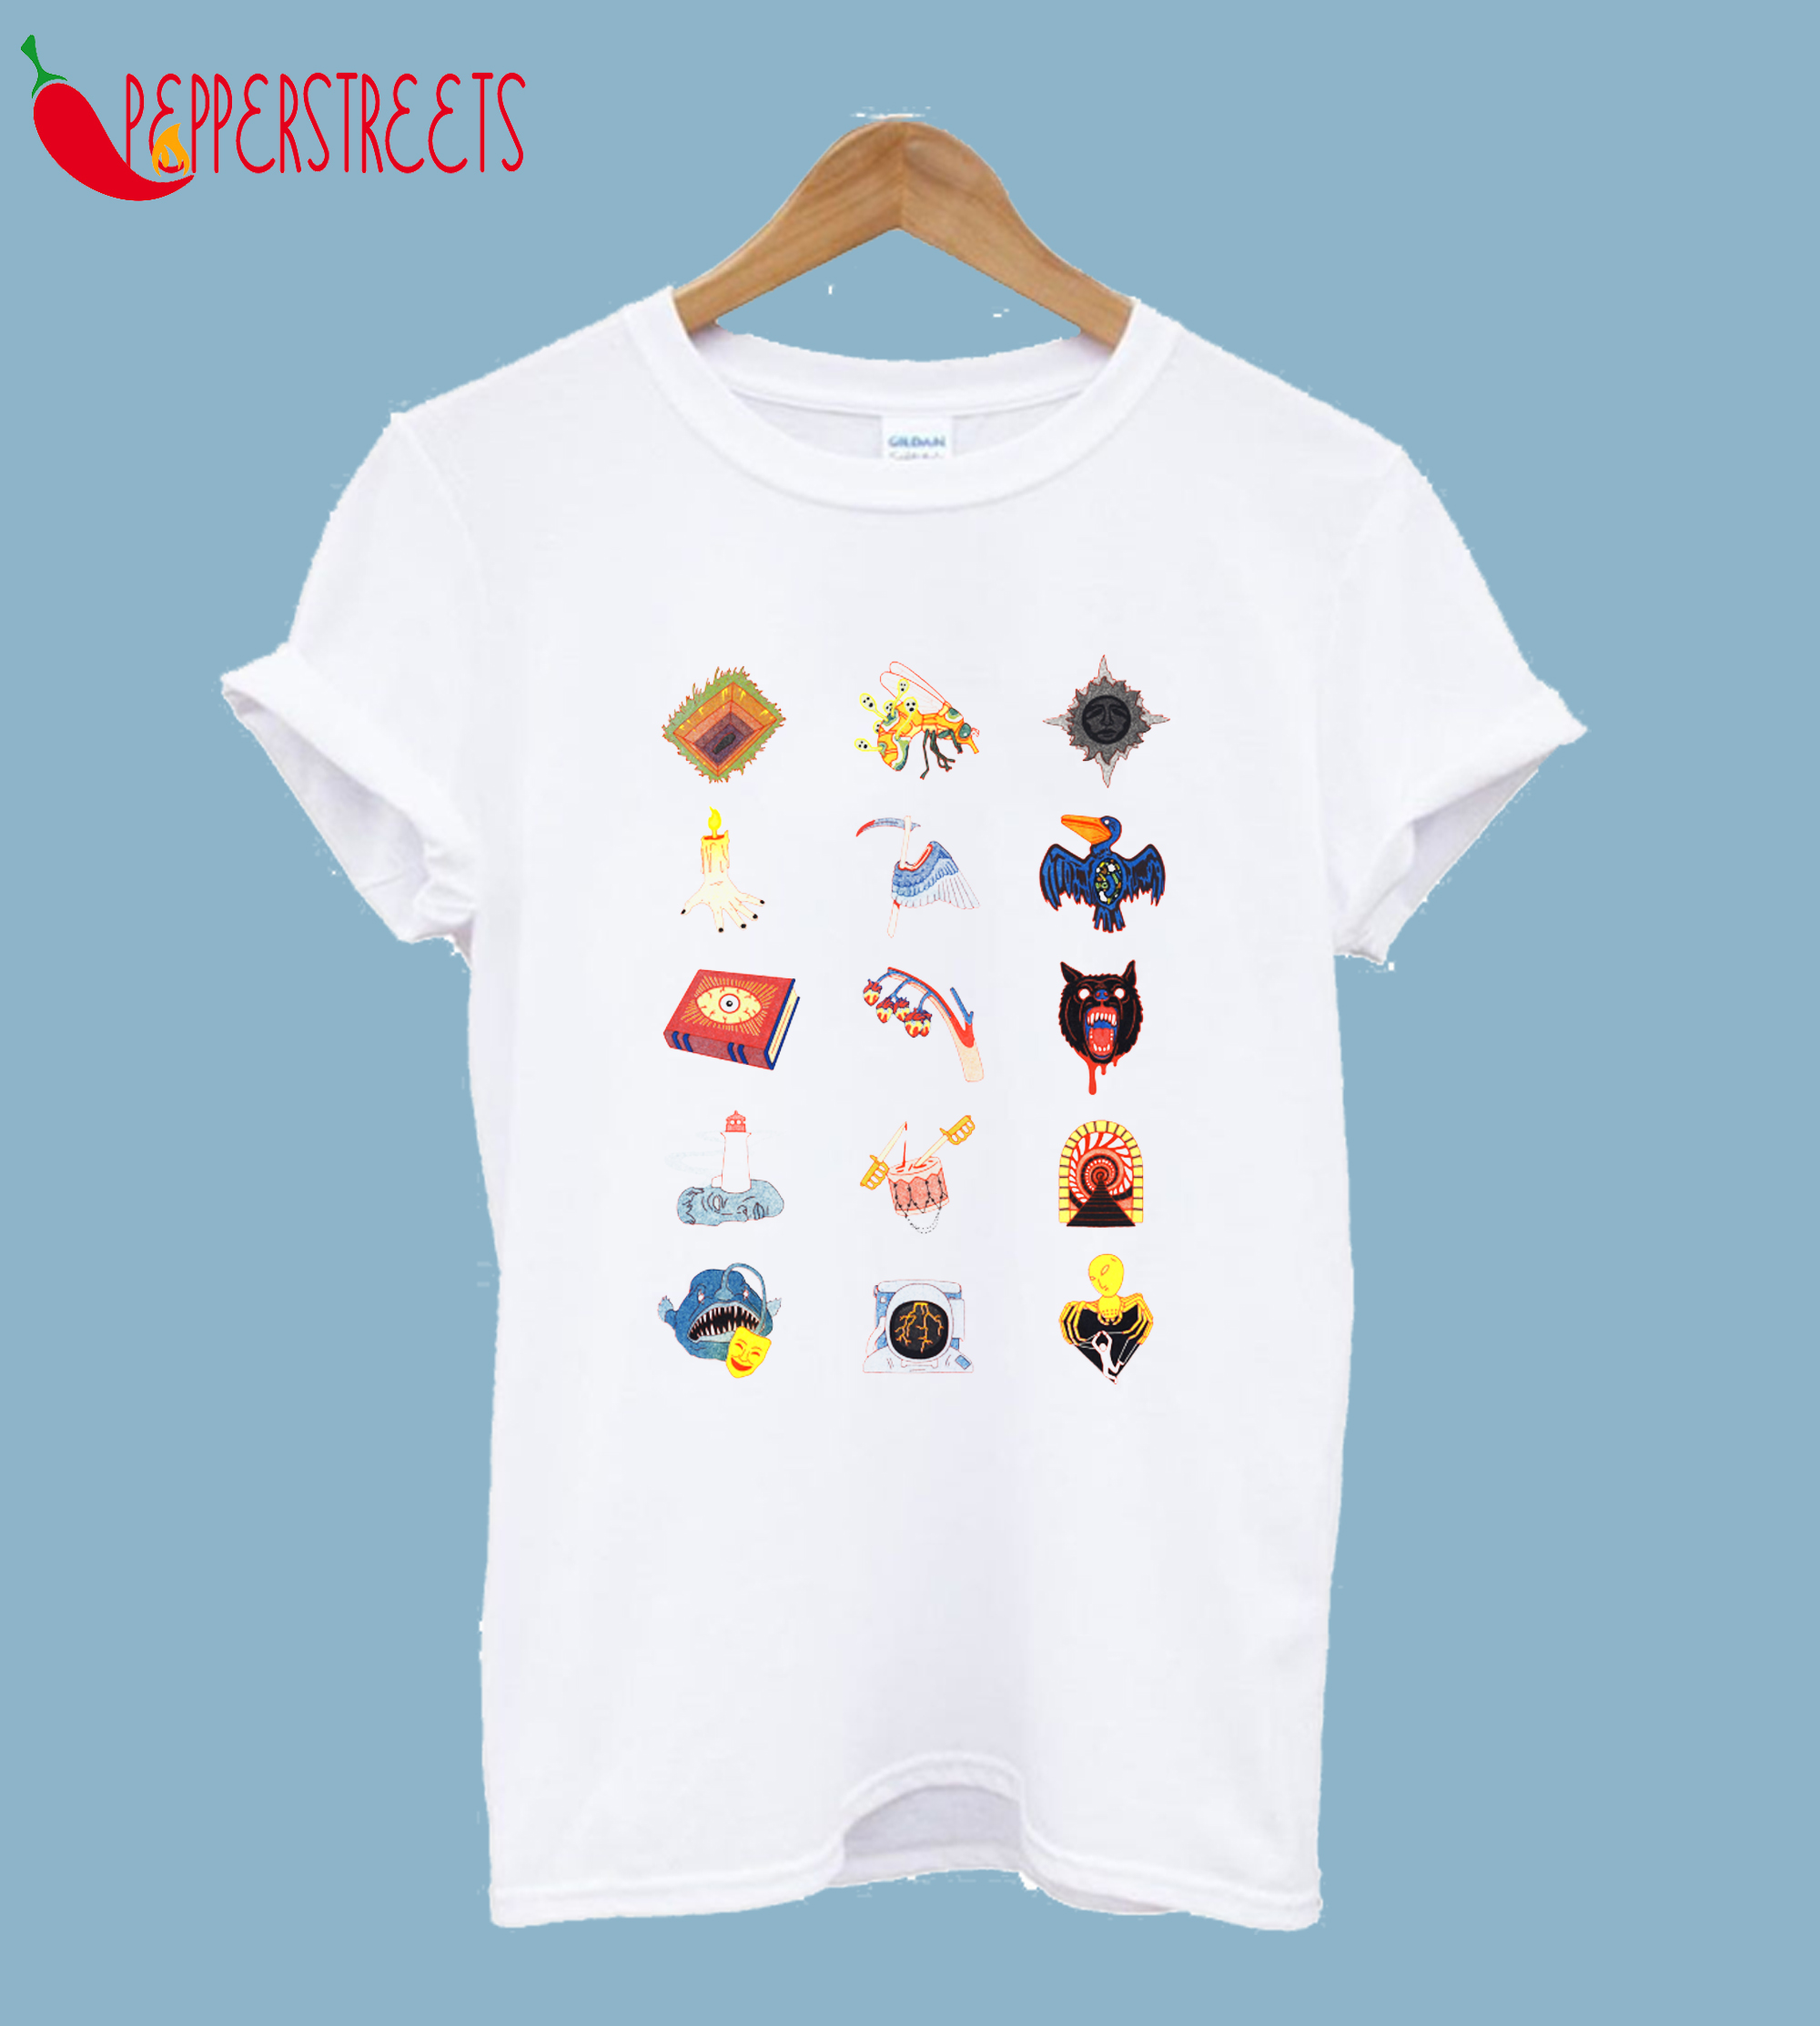 15 Fears Risograph Icons T-Shirt